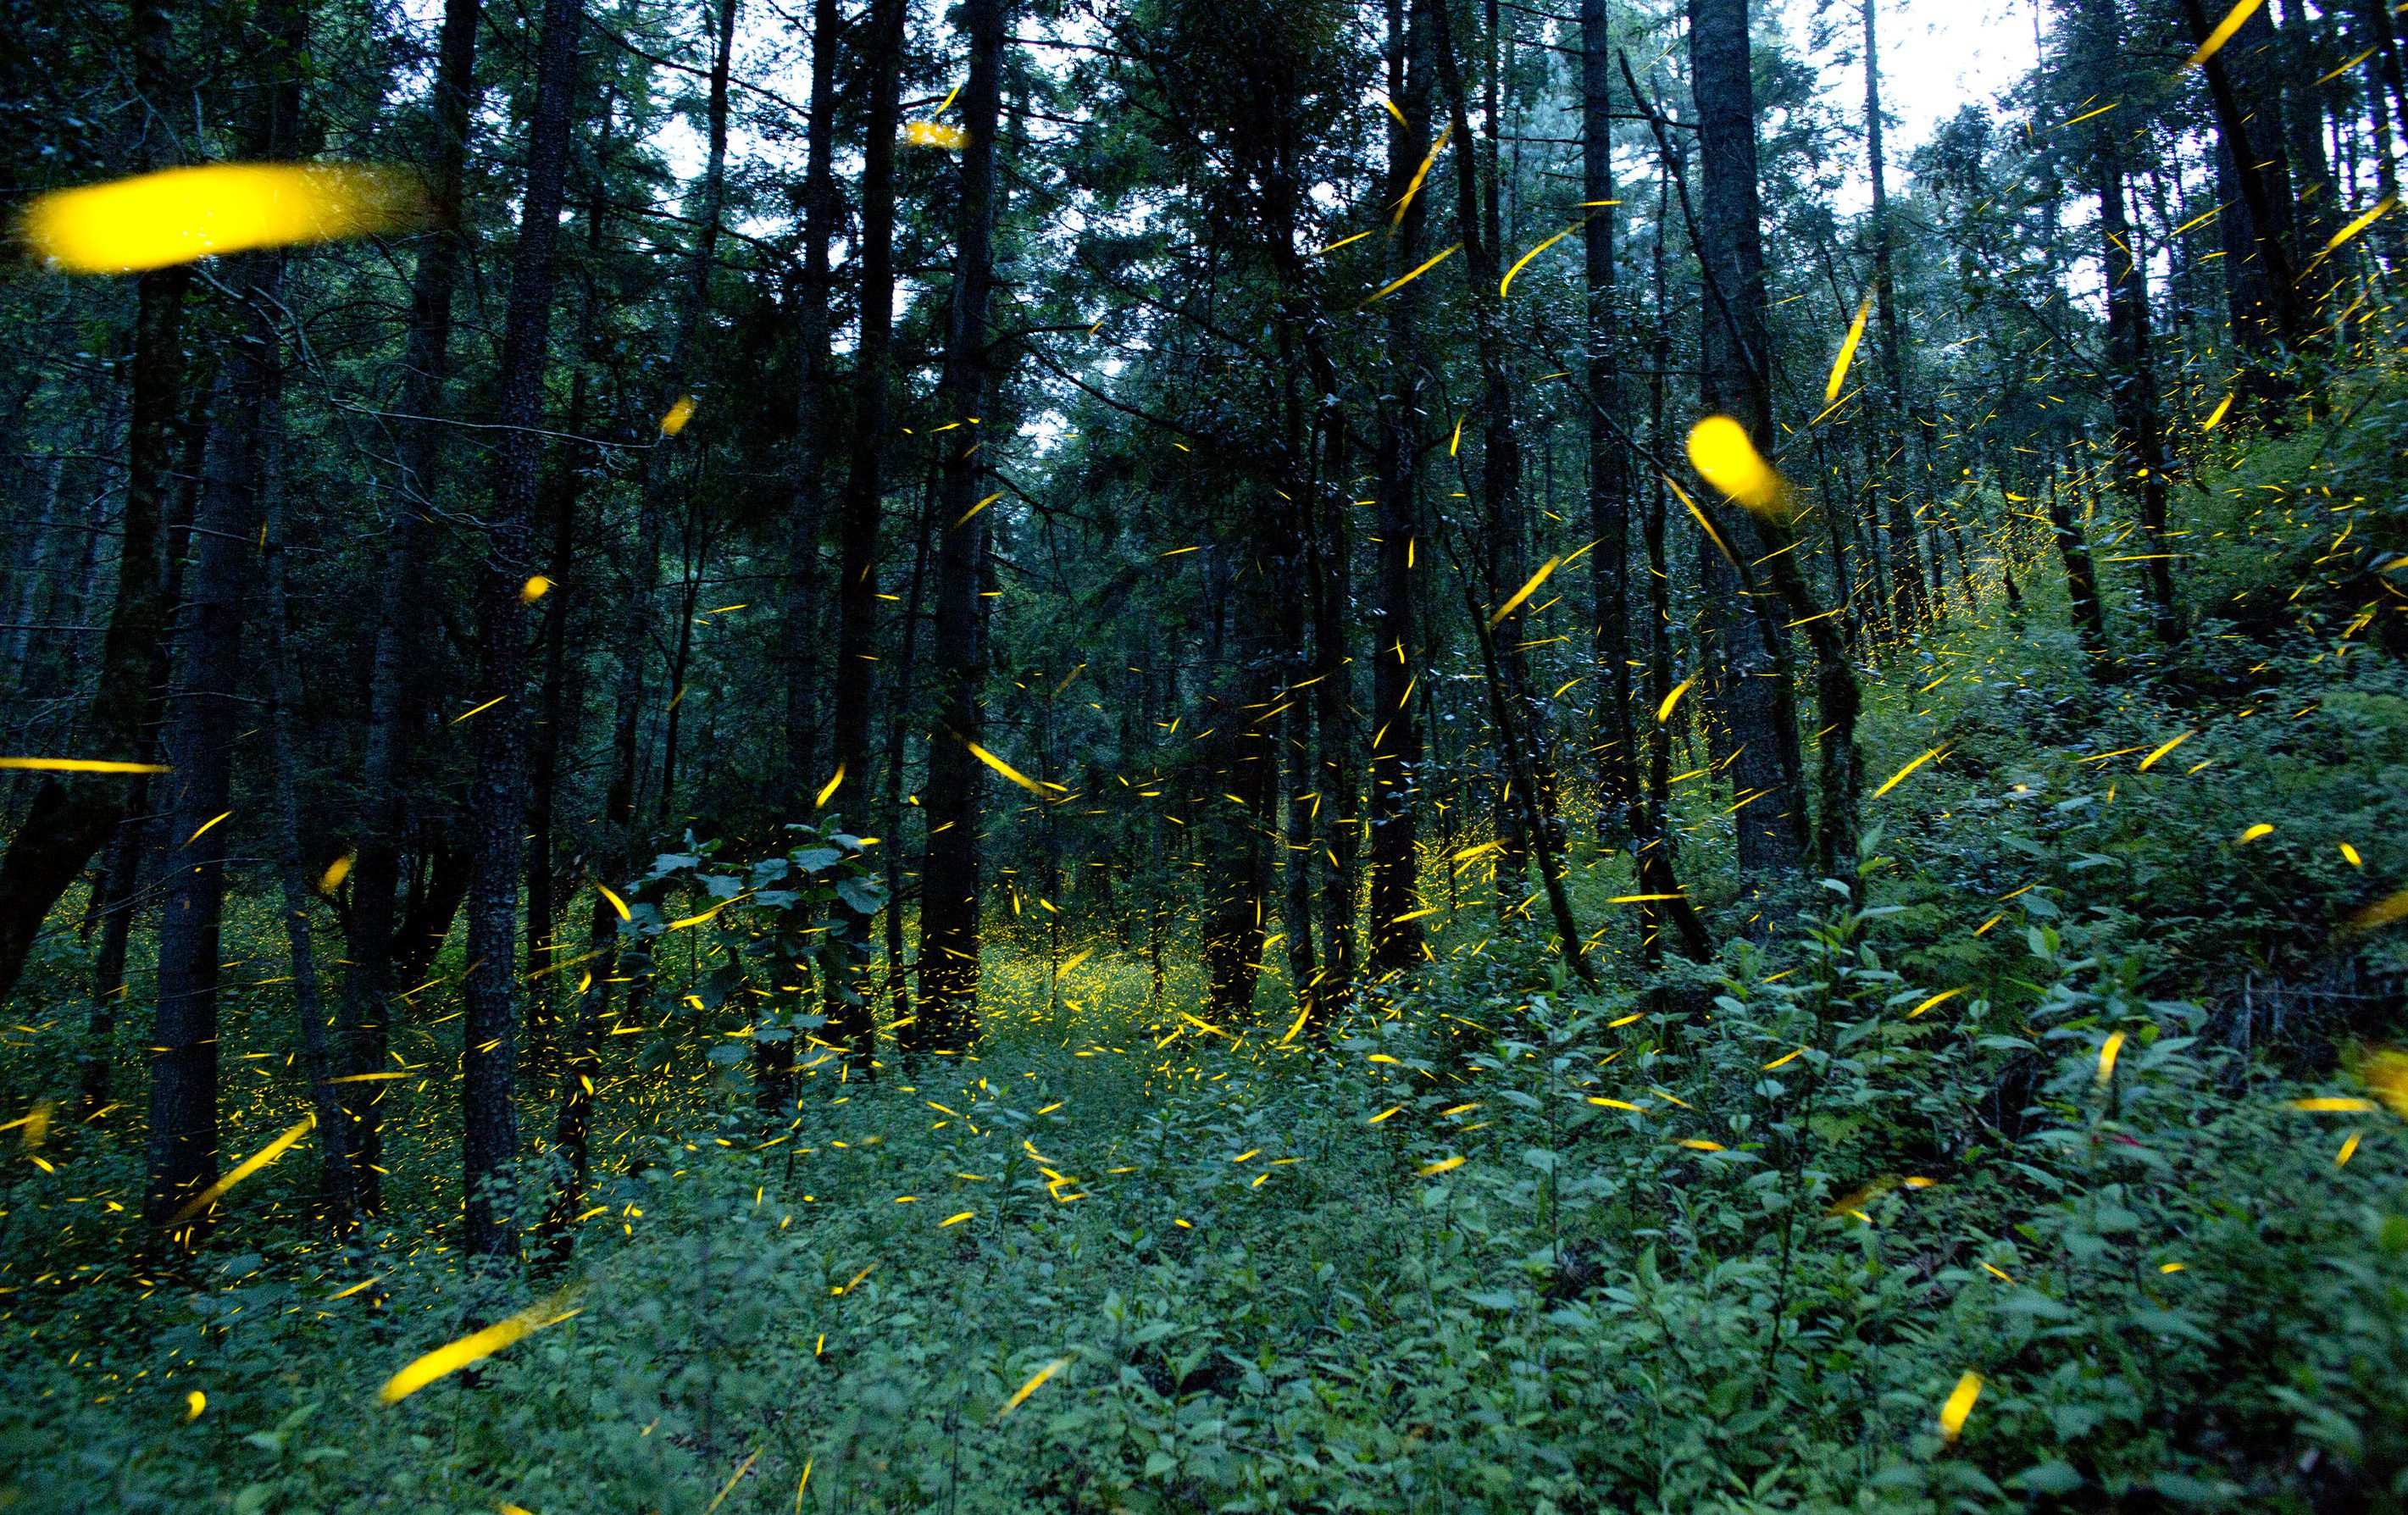 Photos: Farmers in Mexico are giving firefly tours to